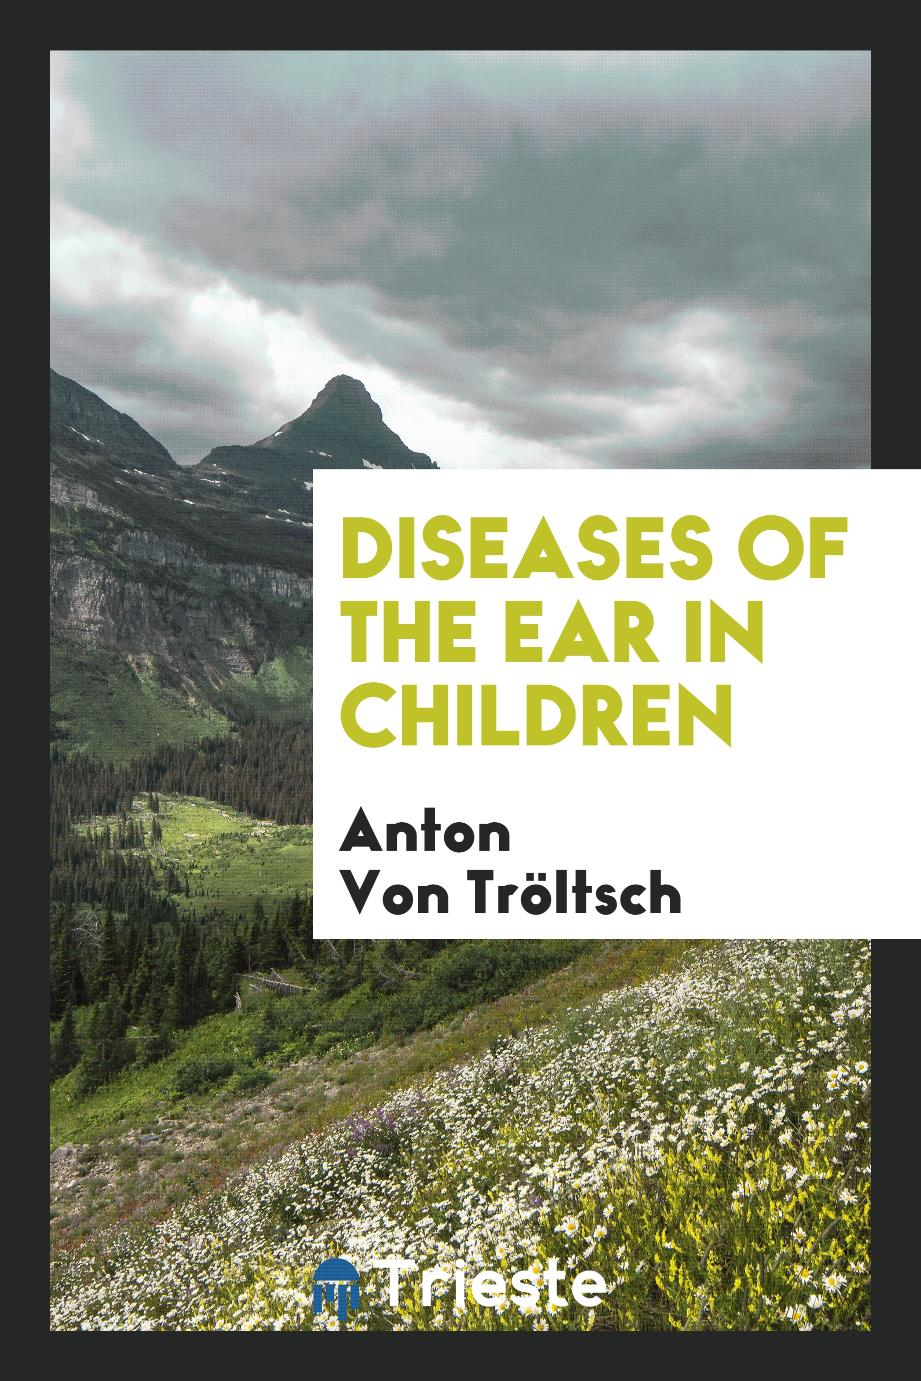 Diseases of the Ear in Children